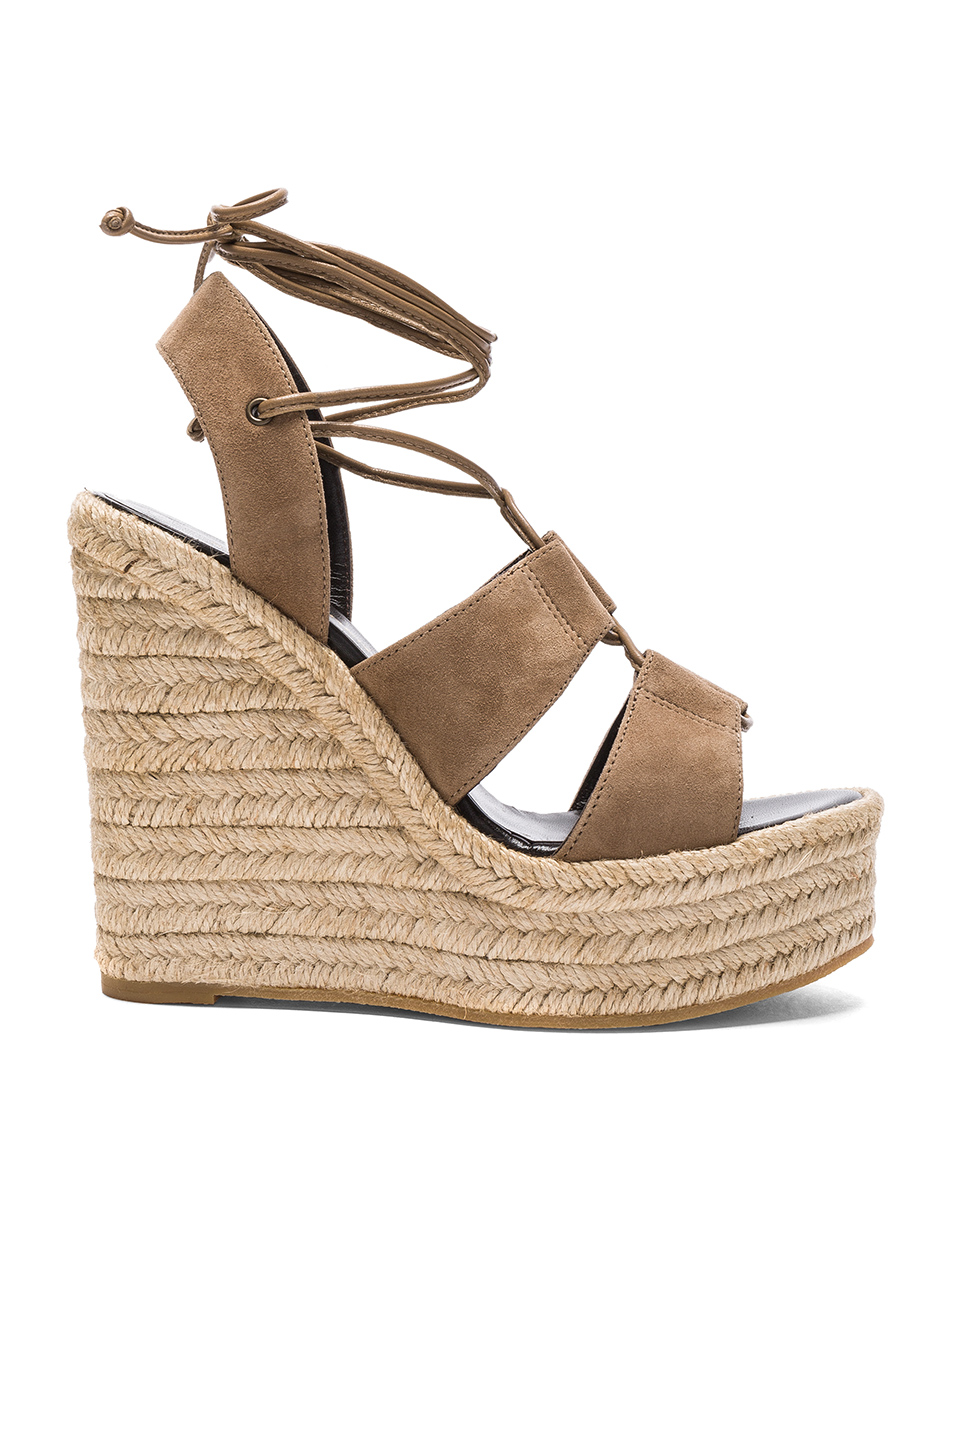 Saint Laurent Suede Espadrille Wedges in Neutrals